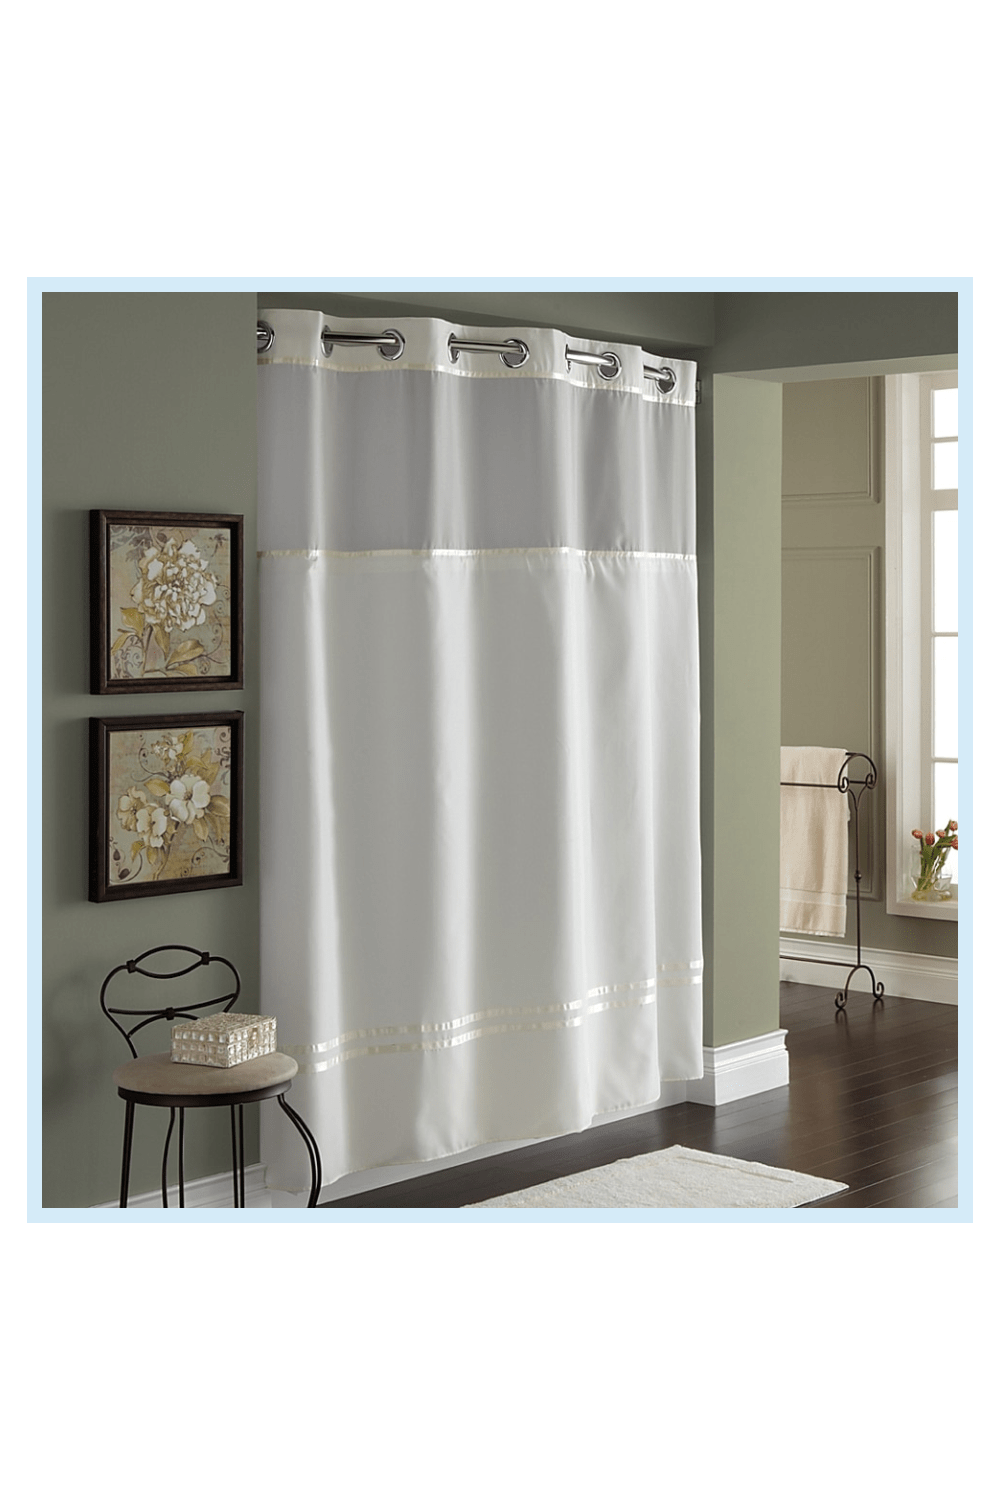 Hookless Escape 71 X 86 Long Fabric Shower Curtain And Liner Set